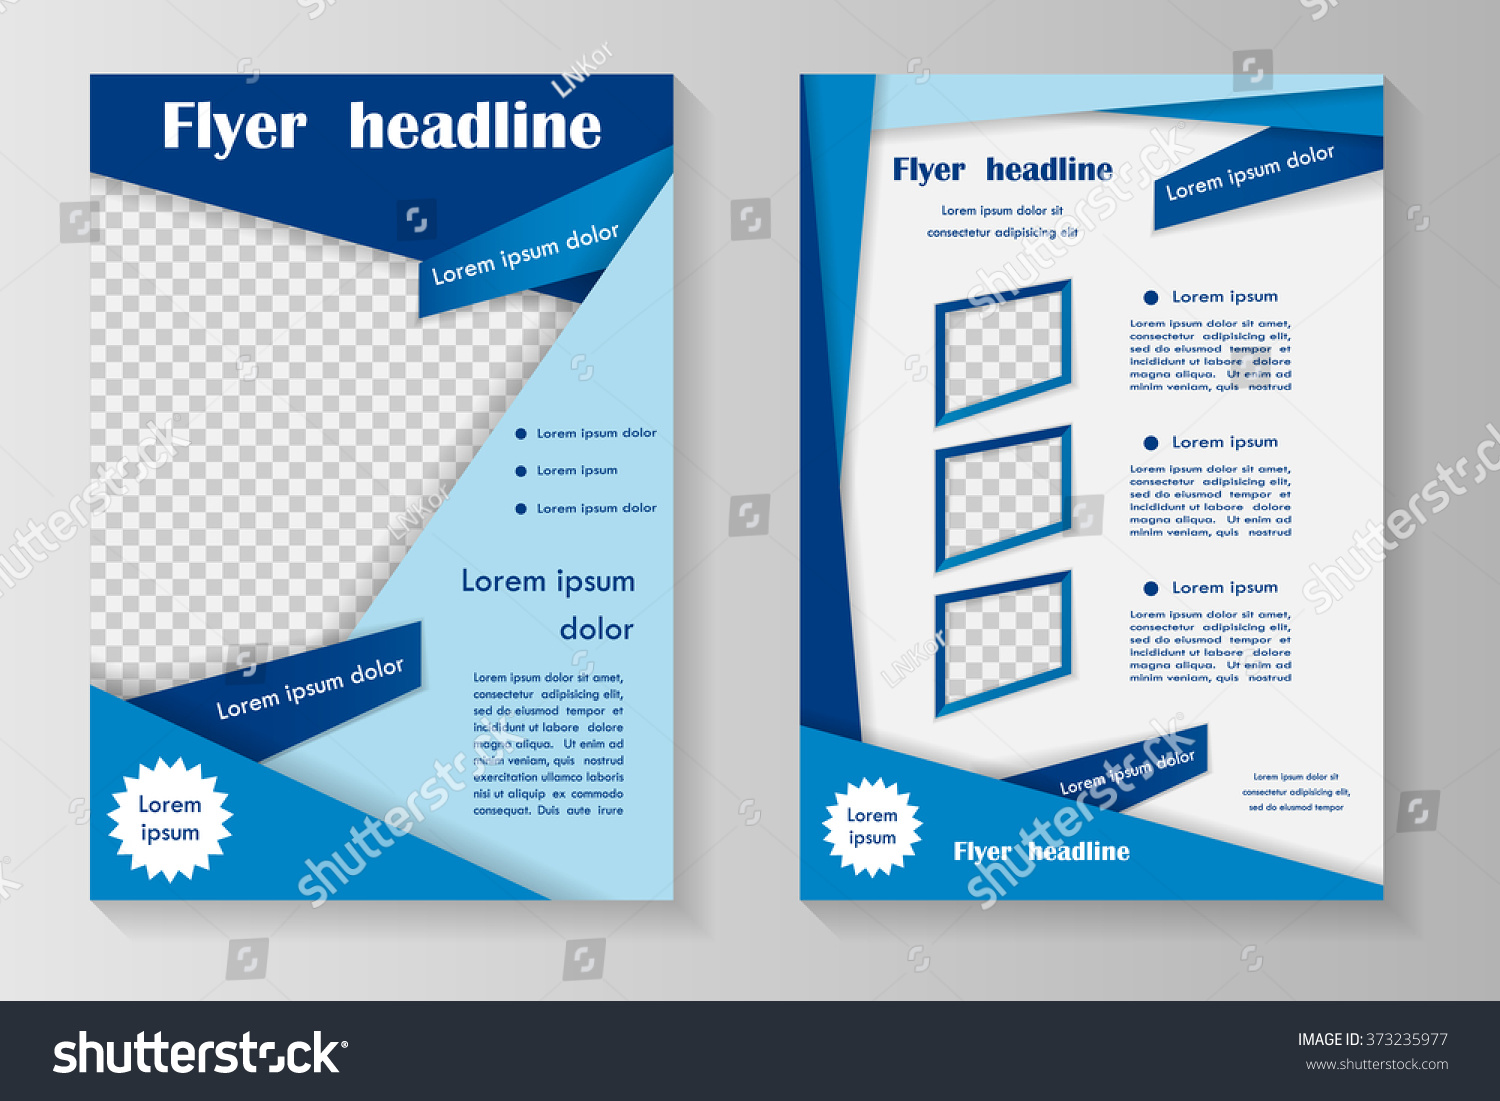 vector flyer template design front page stock vector 373235977 vector flyer template design front page and back page business brochure or cover